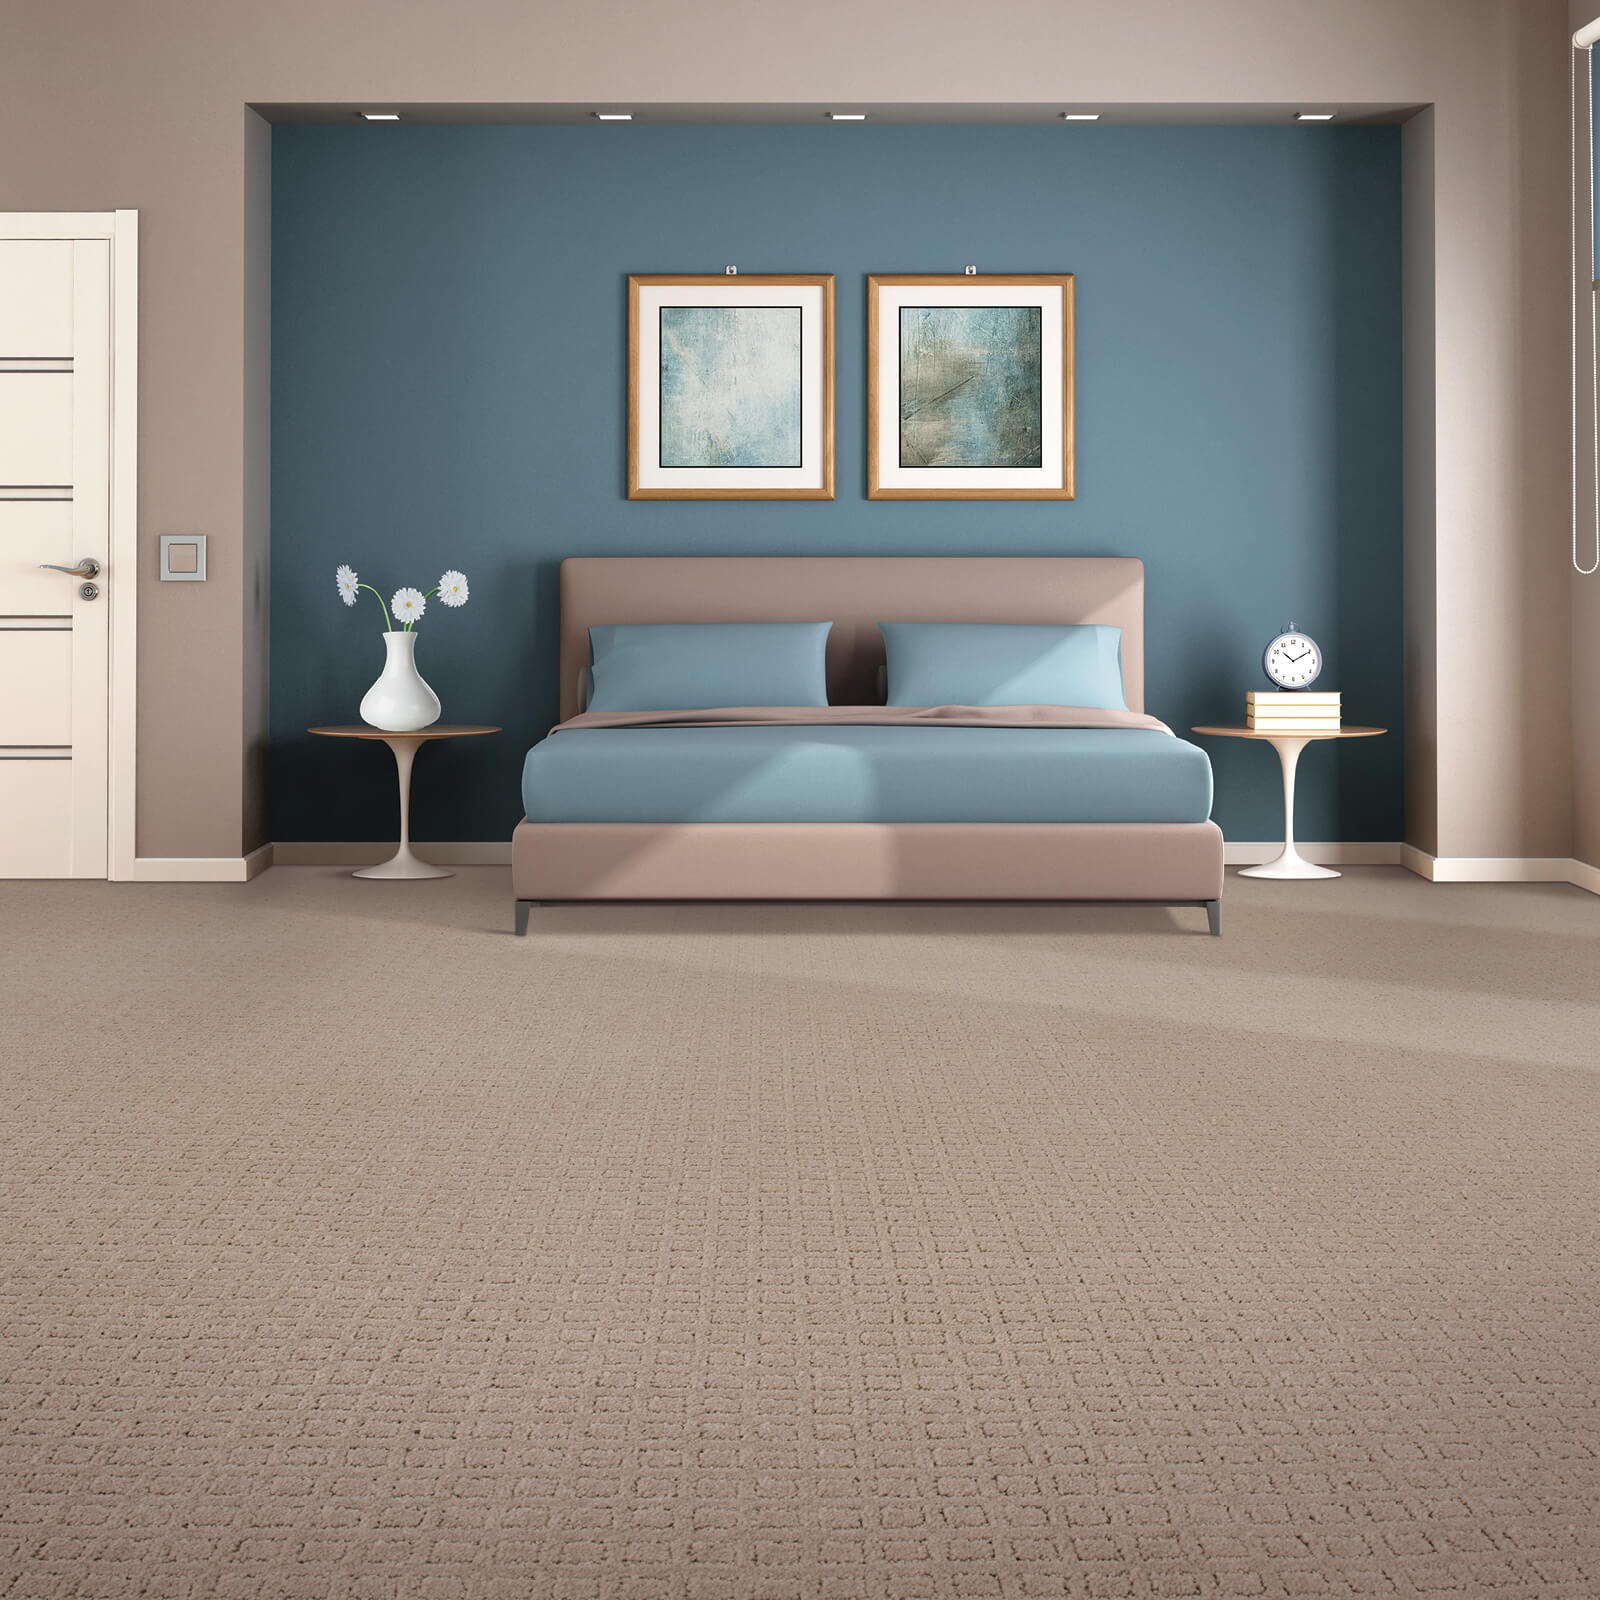 Traditional beauty of floor | Dolphin Carpet & Tile